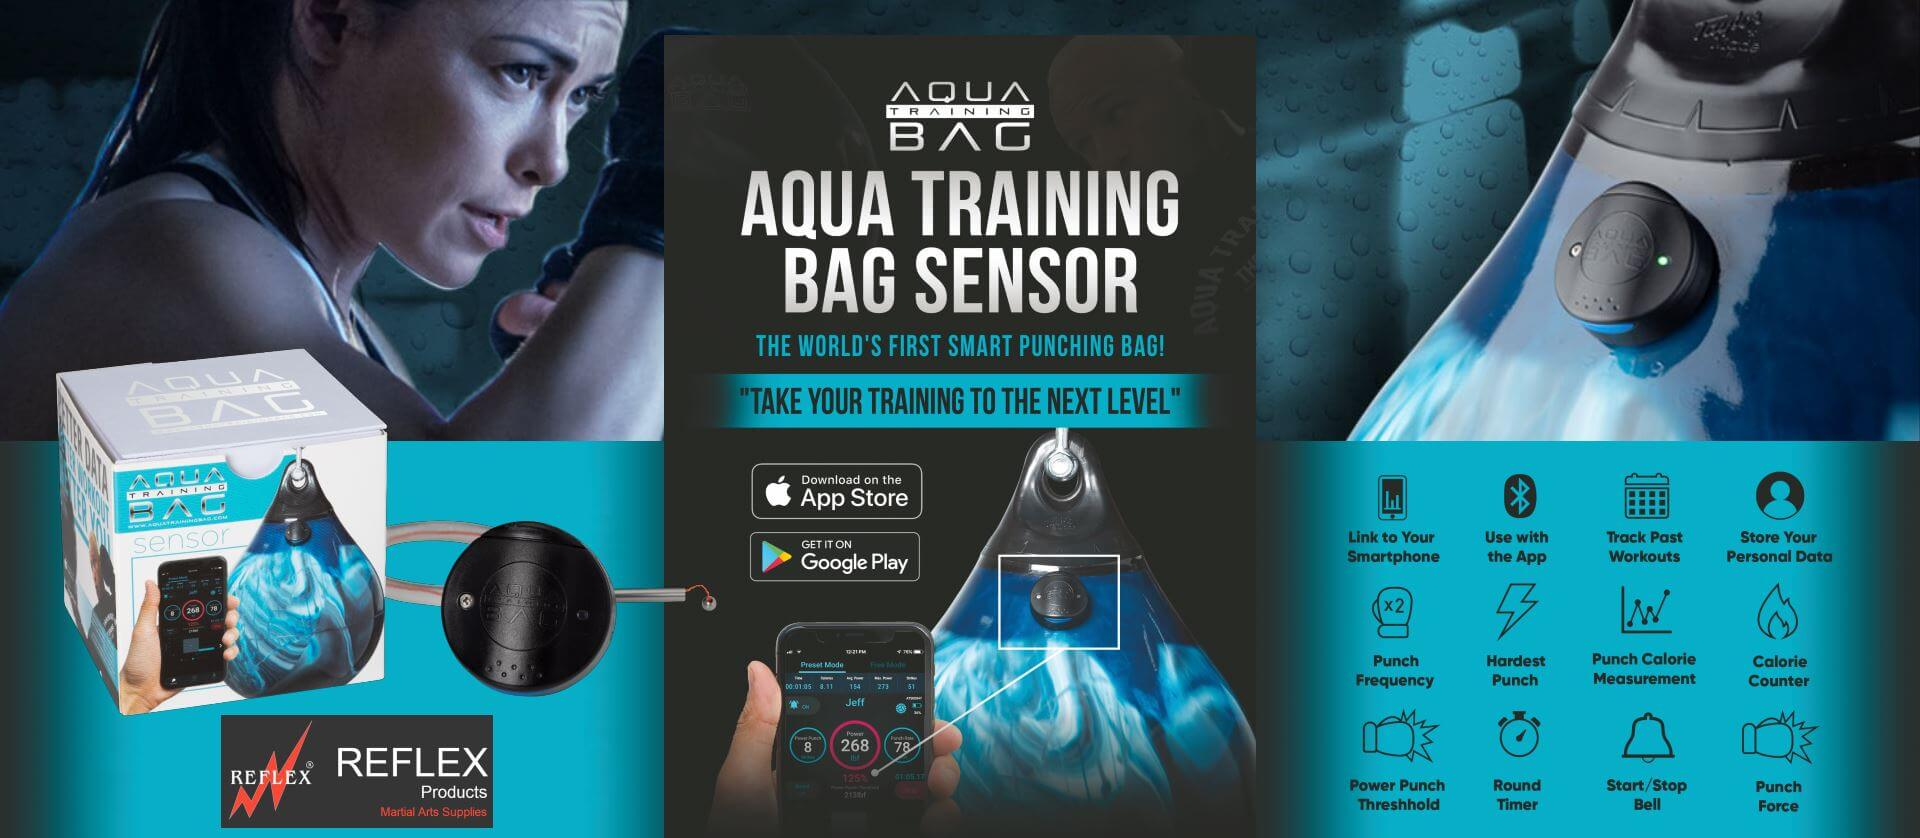 Punch bag sensor for Aqua Training Bags